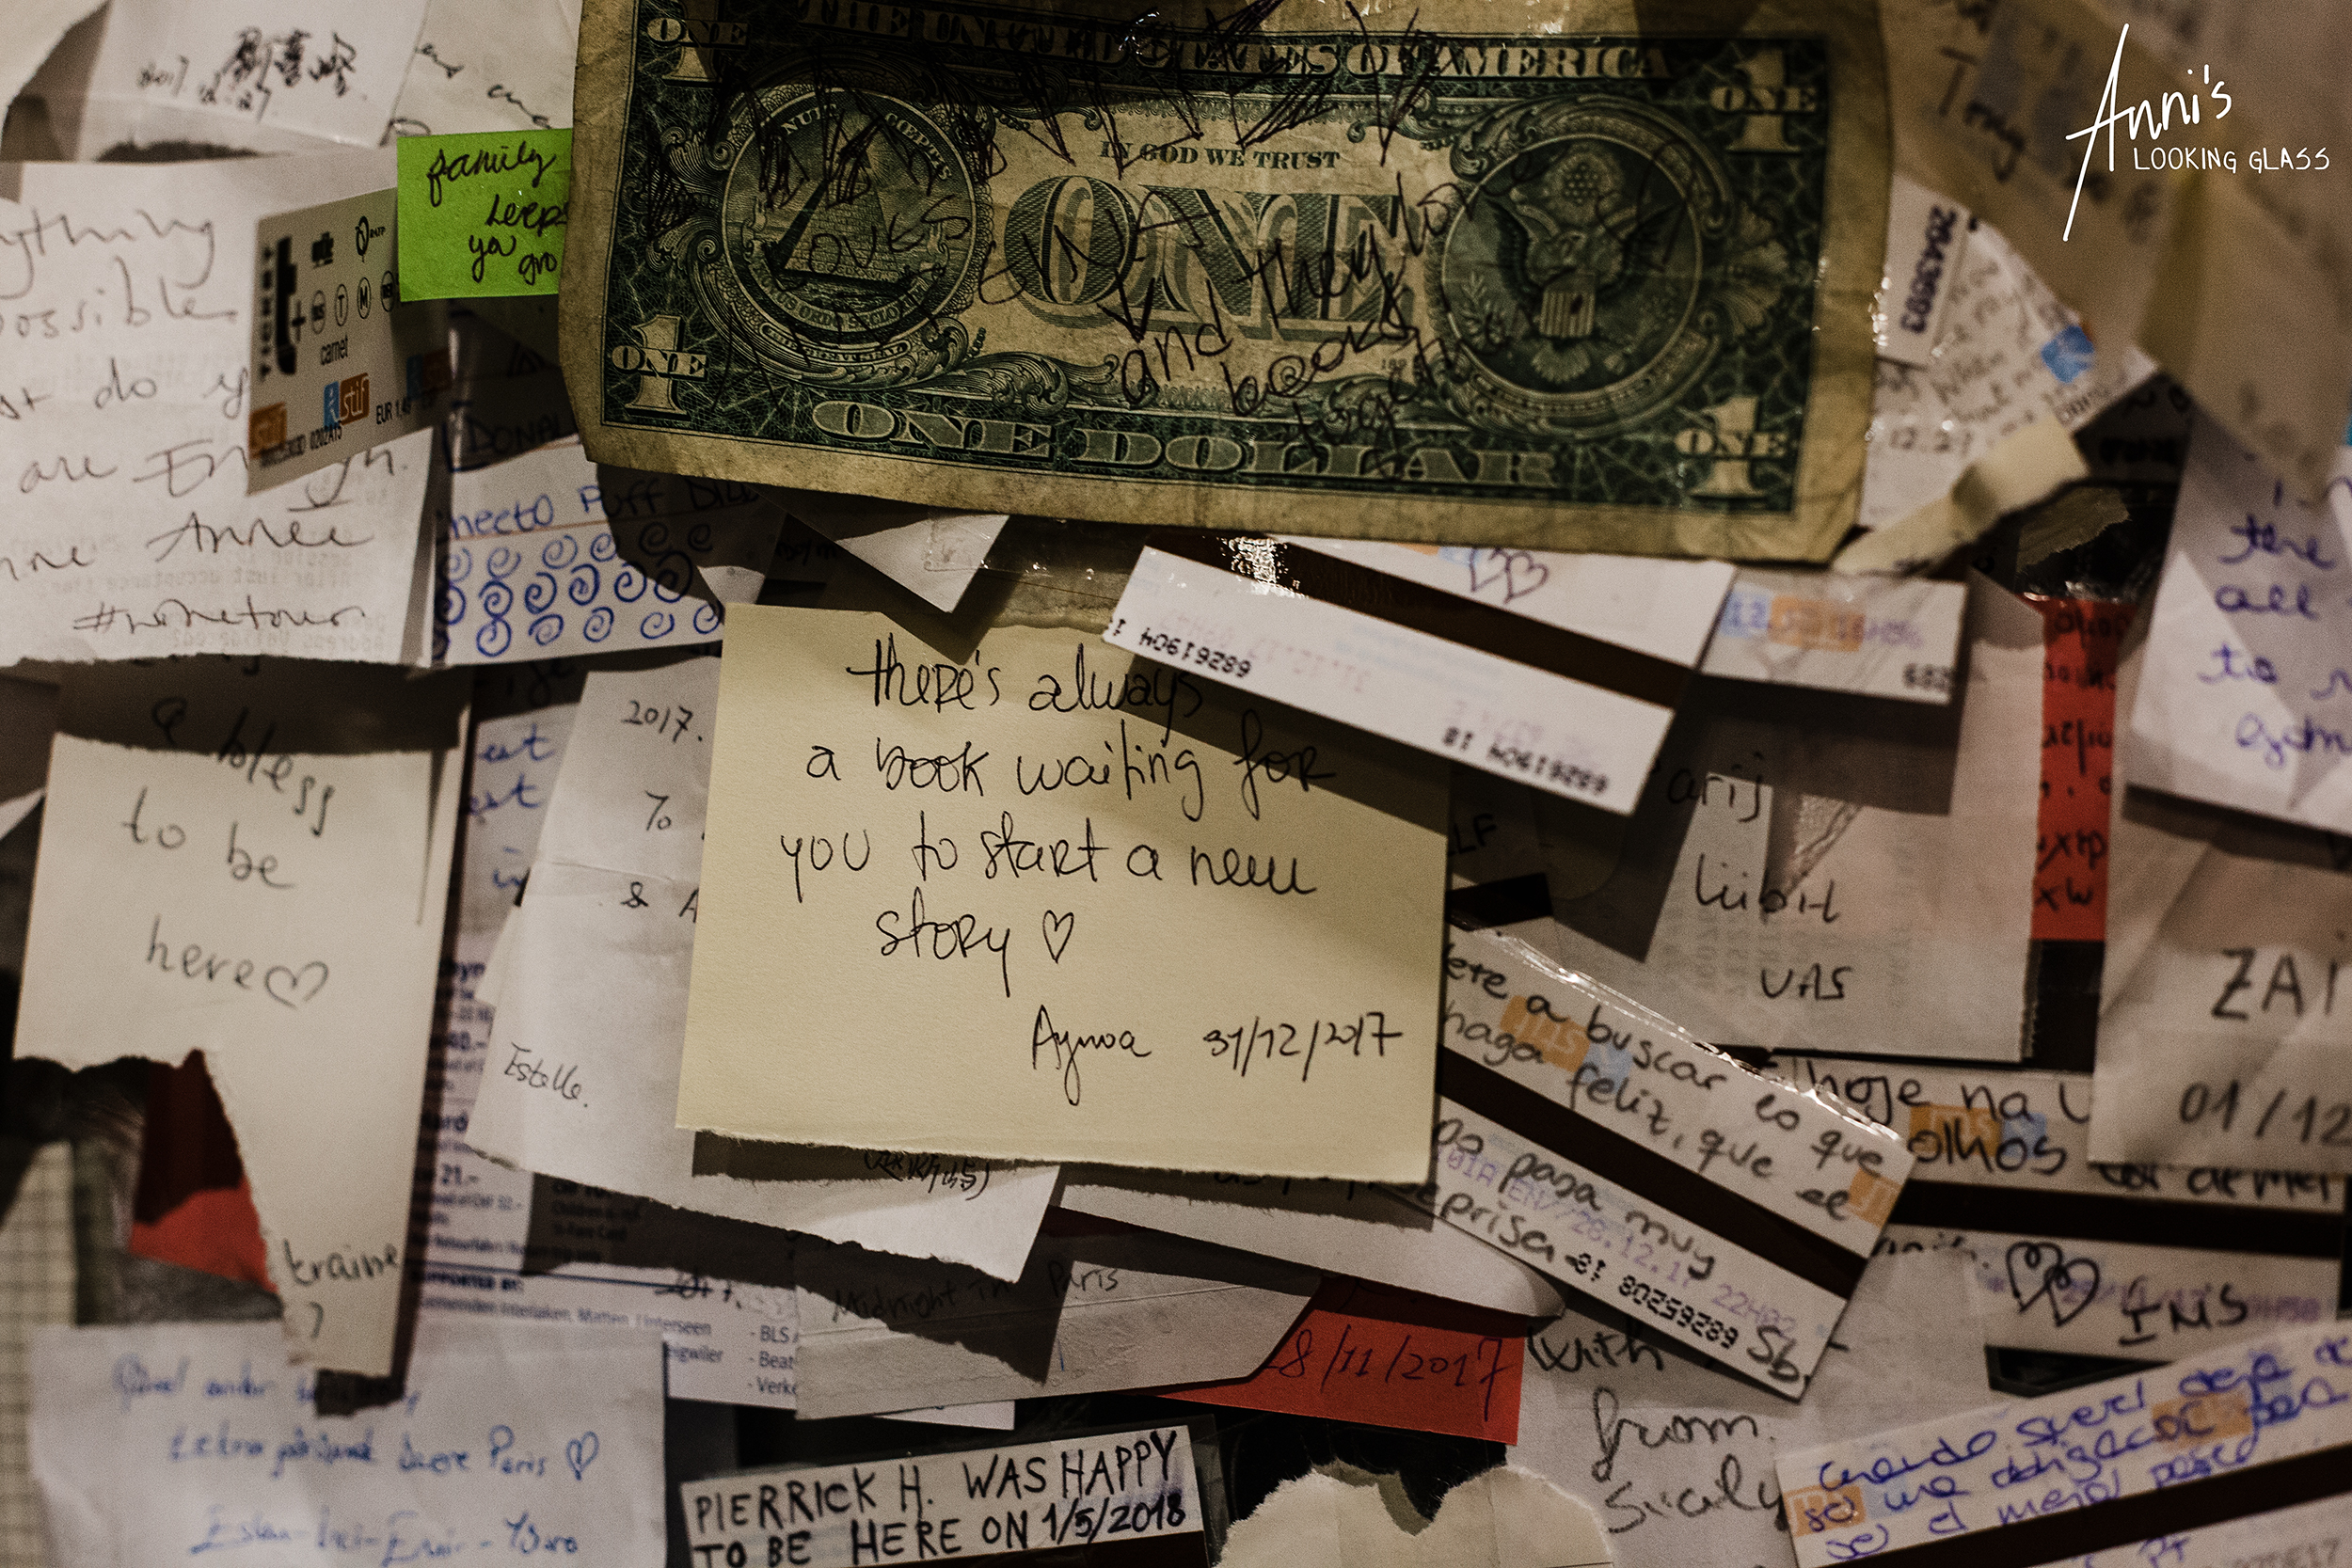 A wall with many messages left by visitors of the Shakespeare and Company bookstore in Paris, France